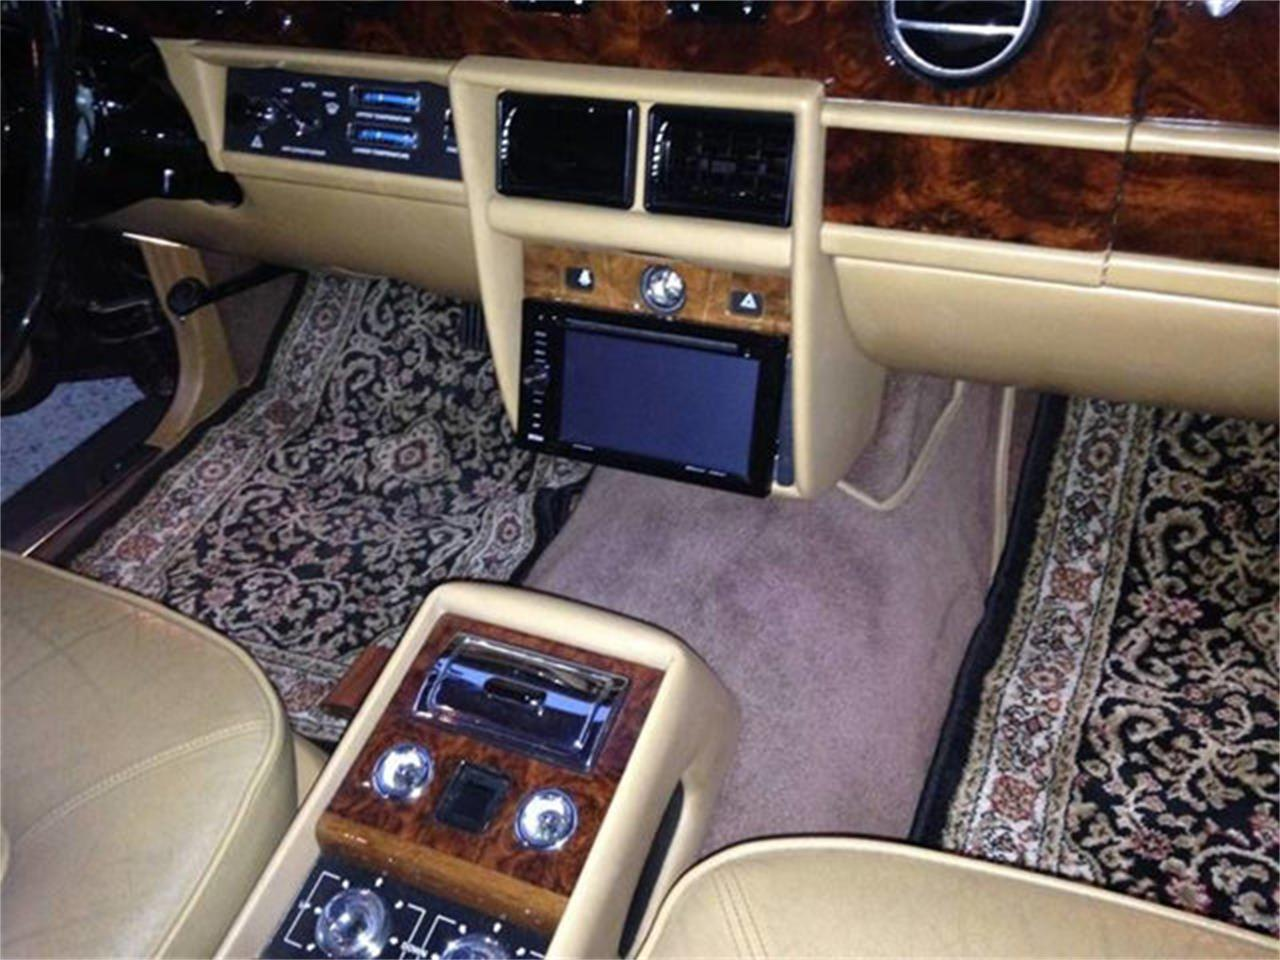 1987 Rolls-Royce Silver Spur (CC-1254920) for sale in Long Island, New York